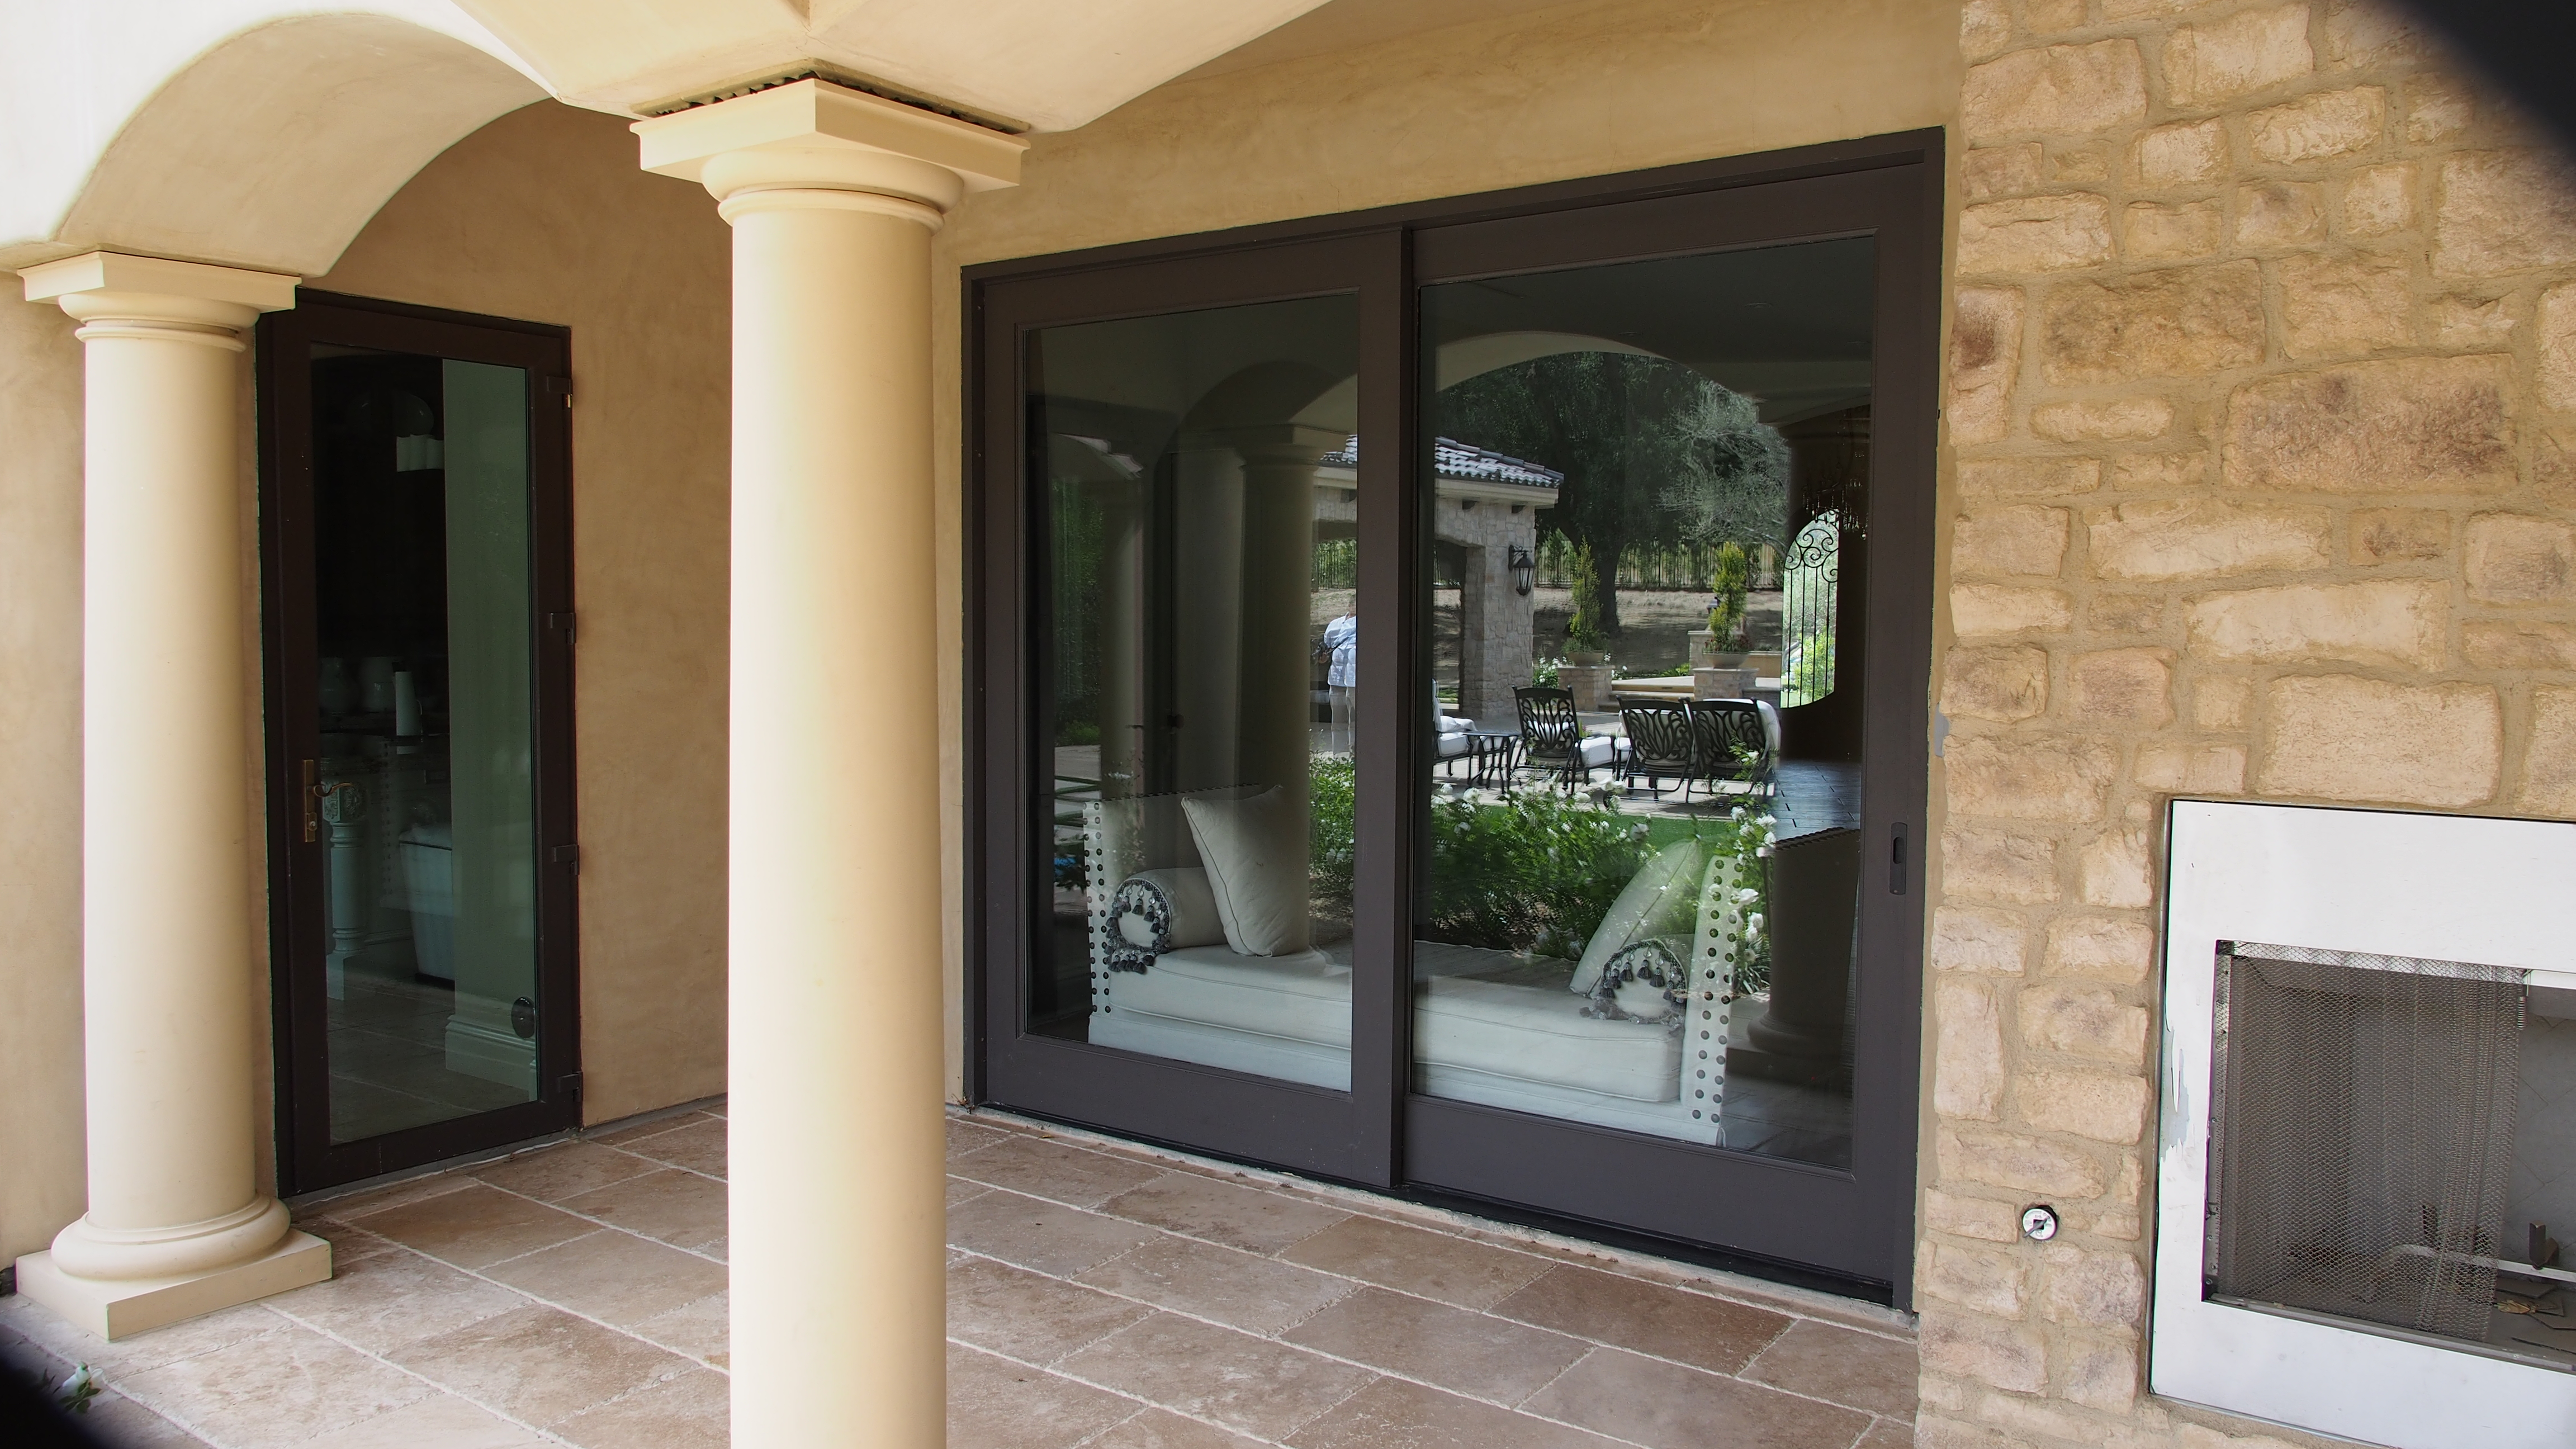 in door tx doors wow ringer built austin site sliding windows for area official patio durability